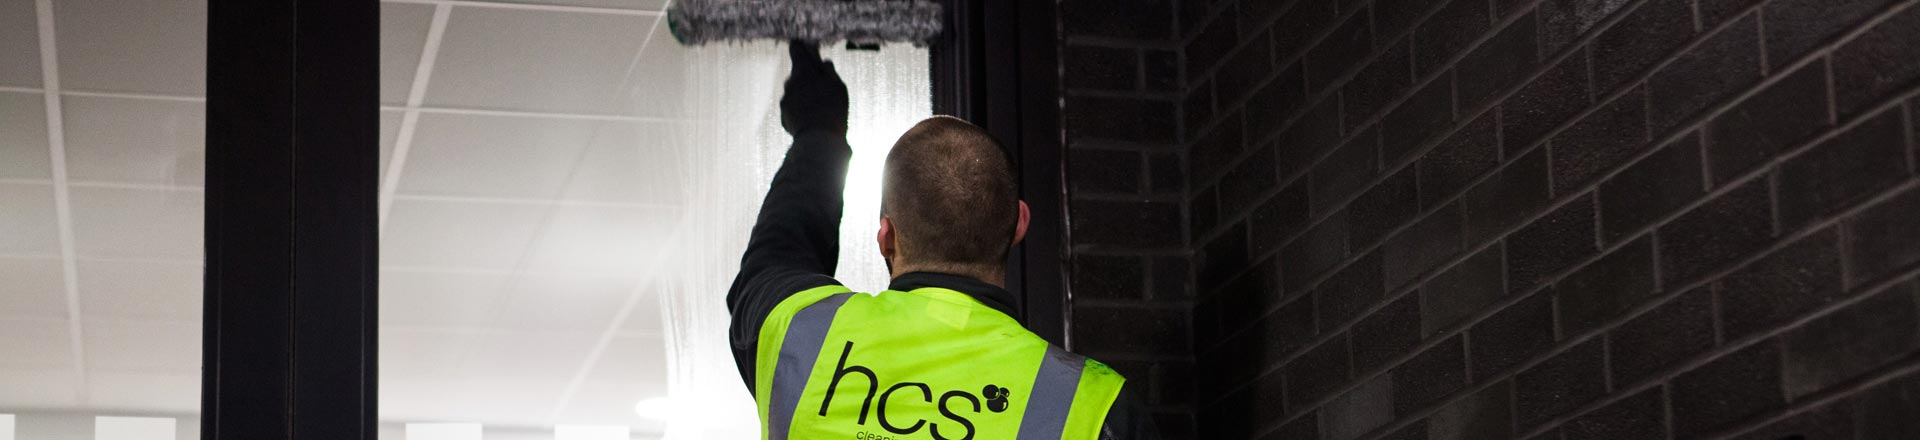 Traditional Window Cleaning in Manchester and the North West - HCS Cleaning Services